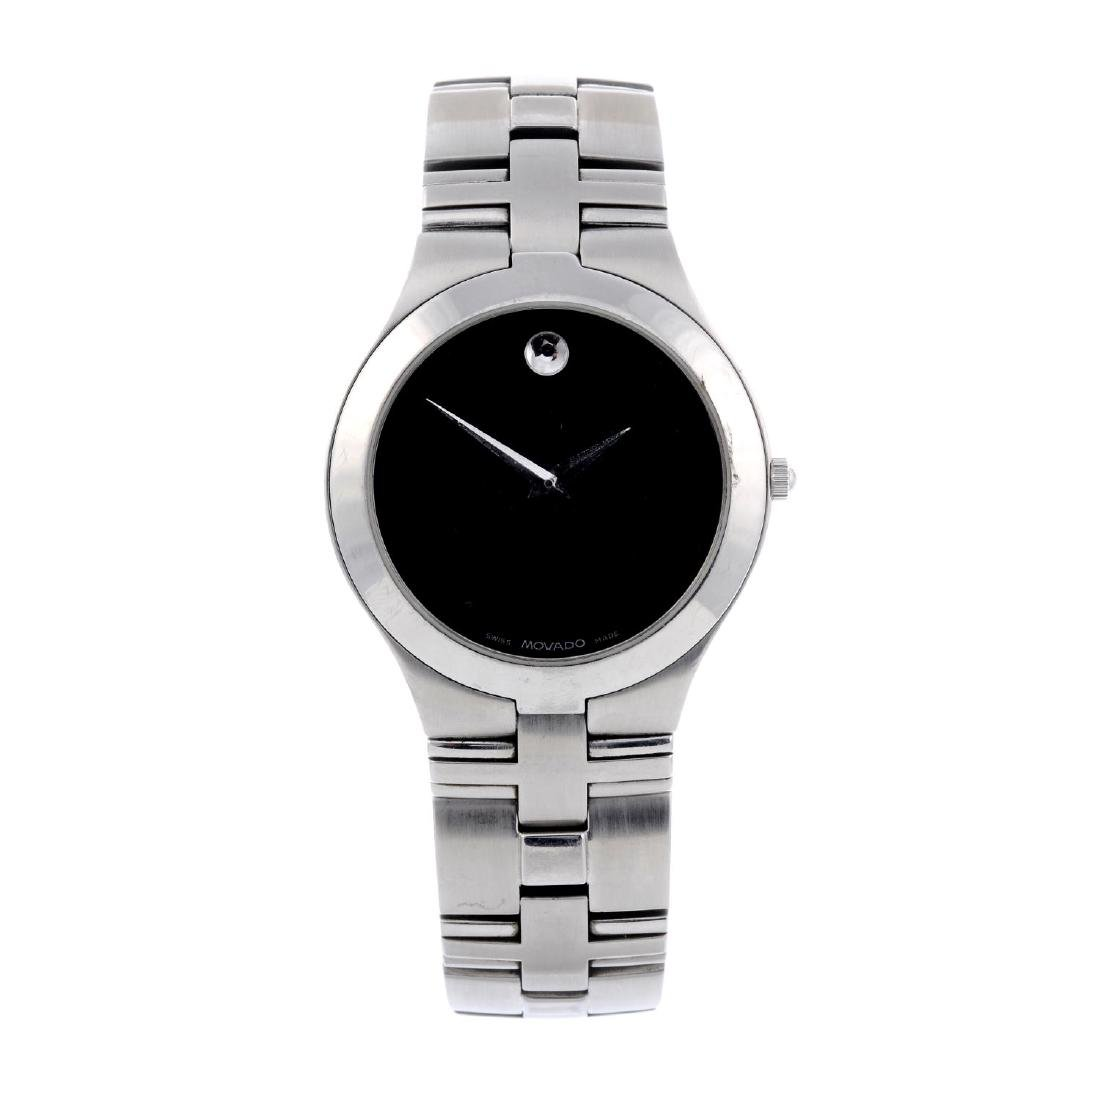 MOVADO - a gentleman's Museum bracelet watch. Stainless